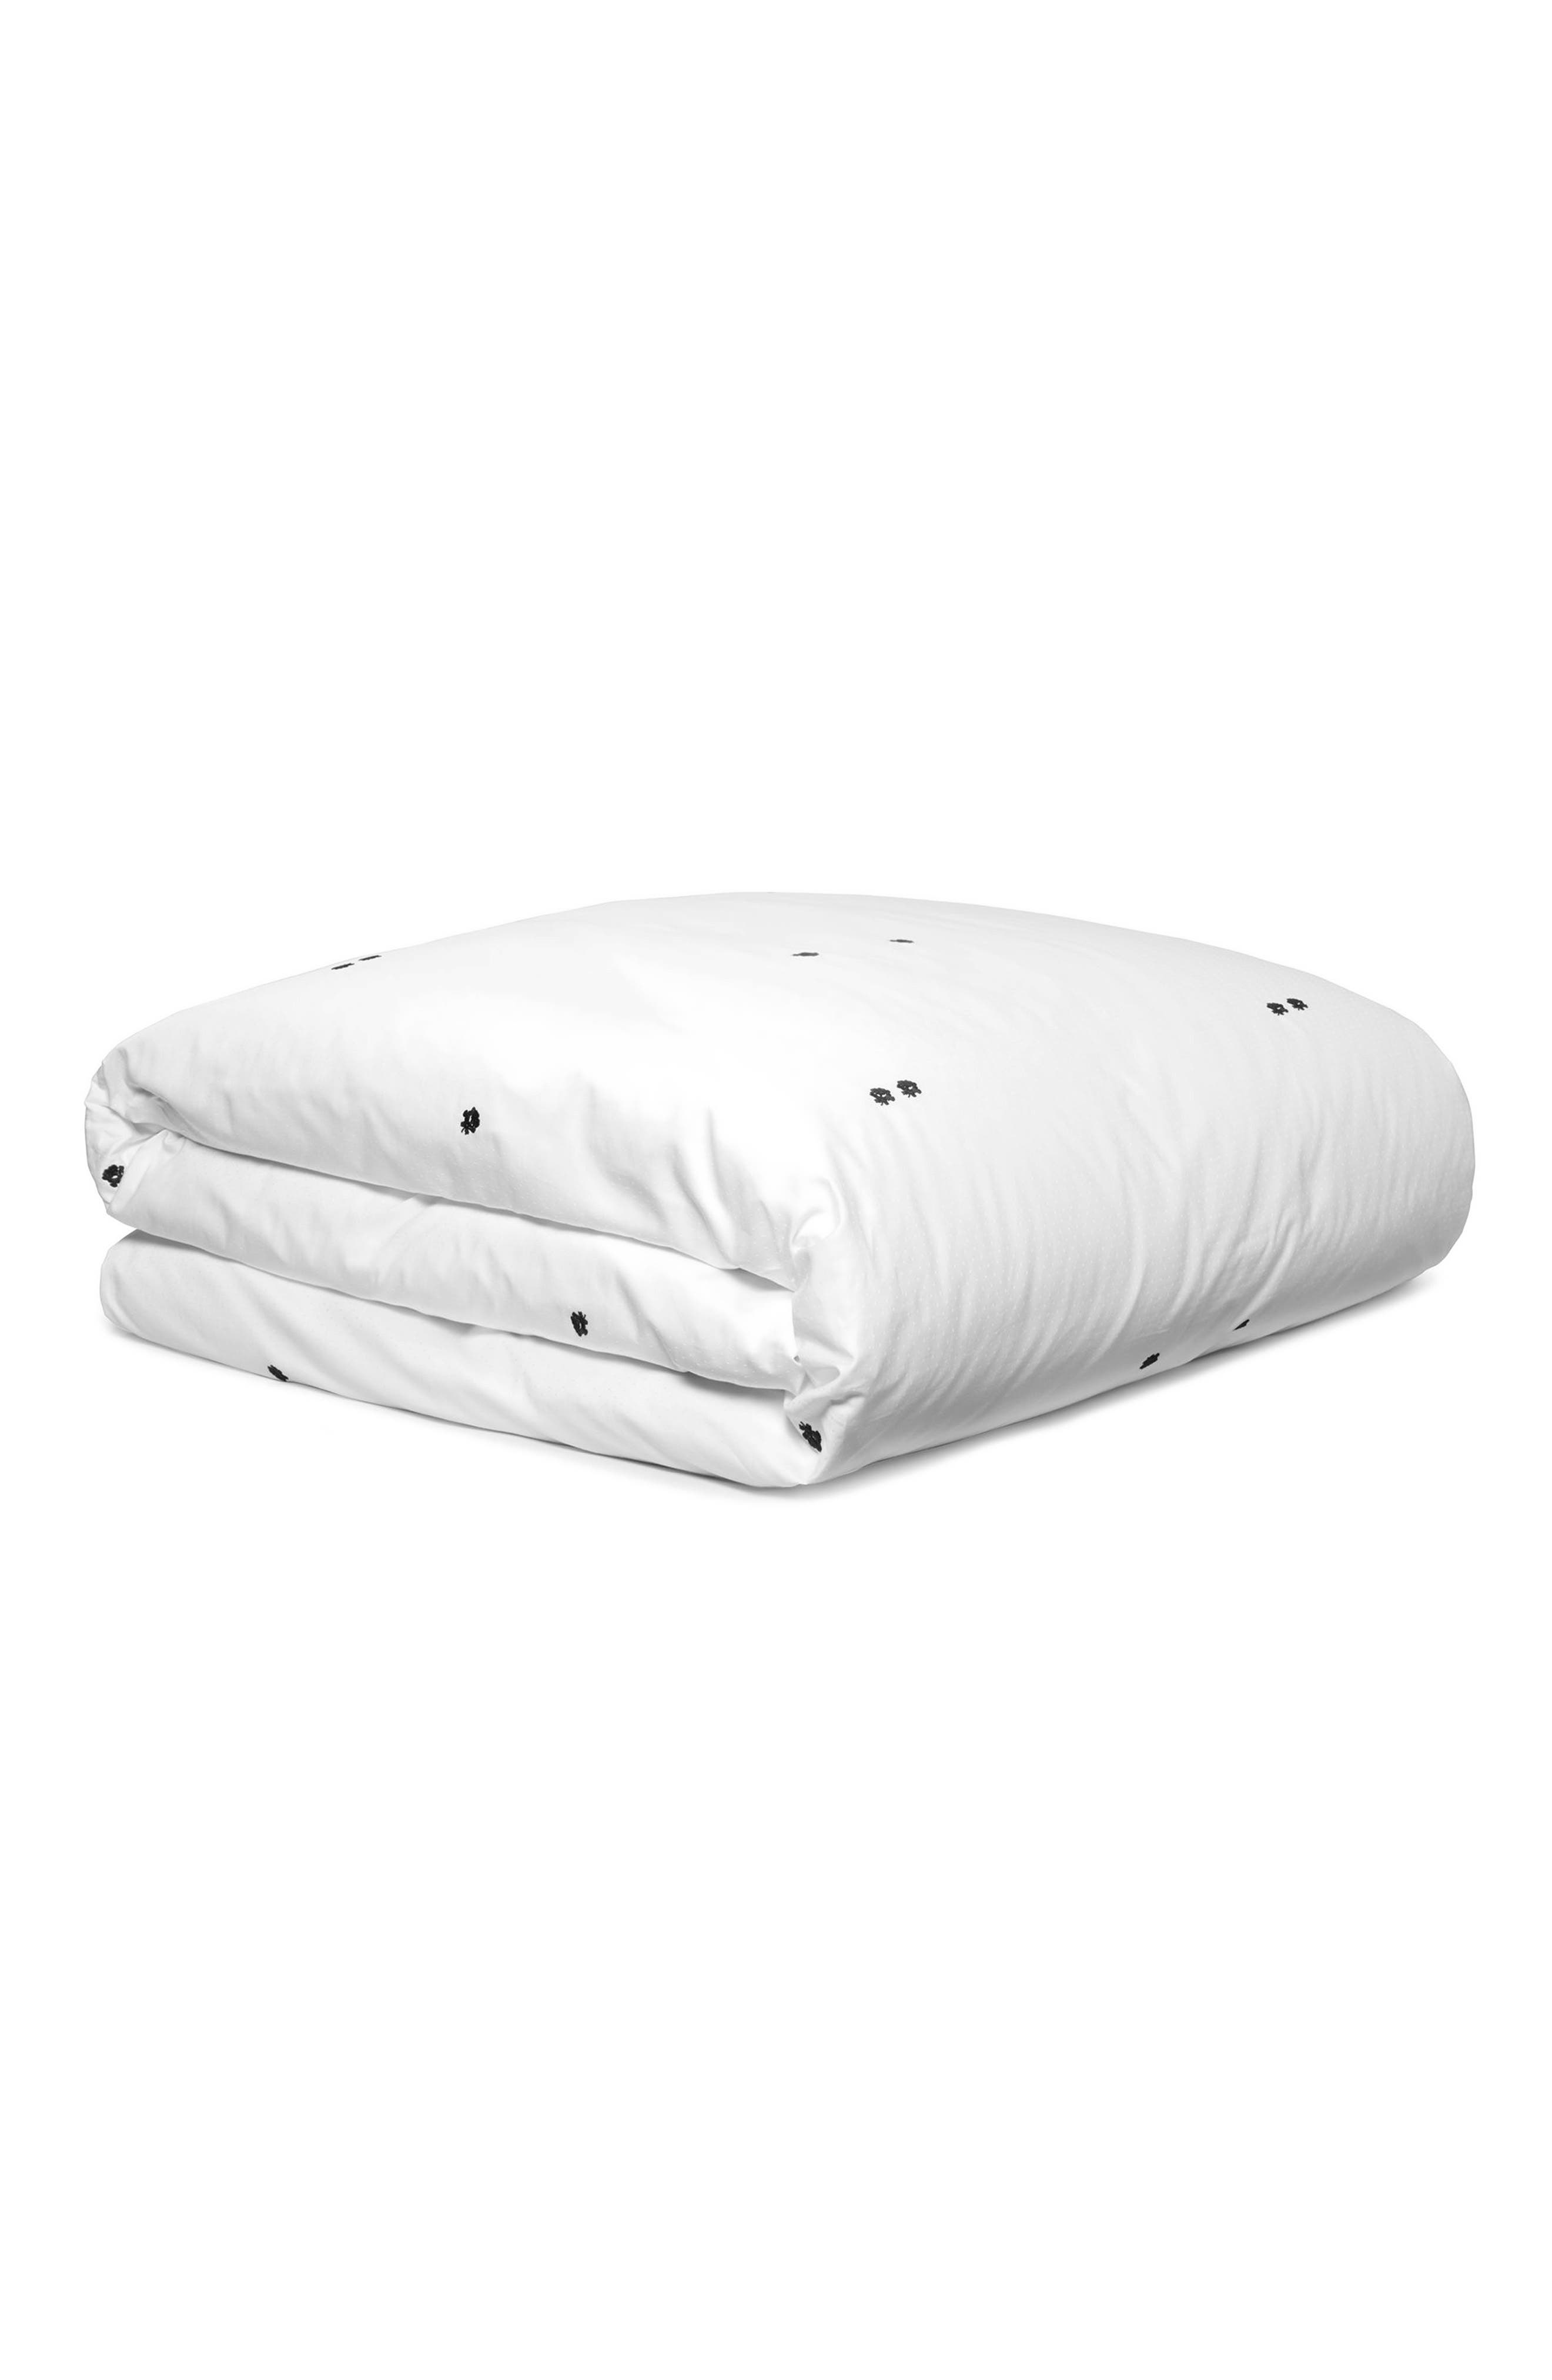 Clone Duvet Cover,                         Main,                         color, White